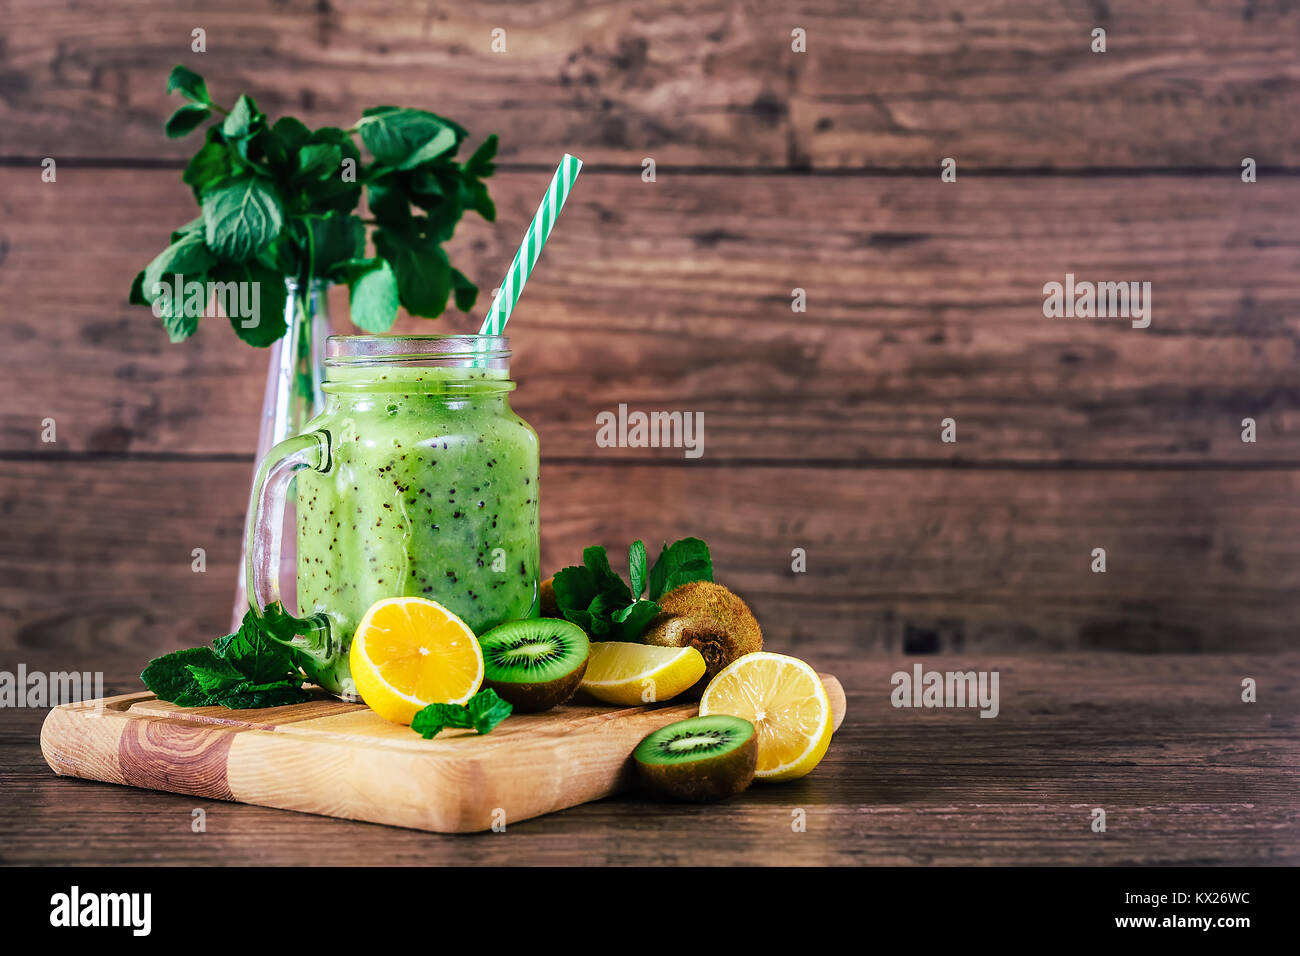 Delicious kiwi smoothie with mint in mason jar on table against dark wooden background. Healthy lifestyle concept - Stock Image